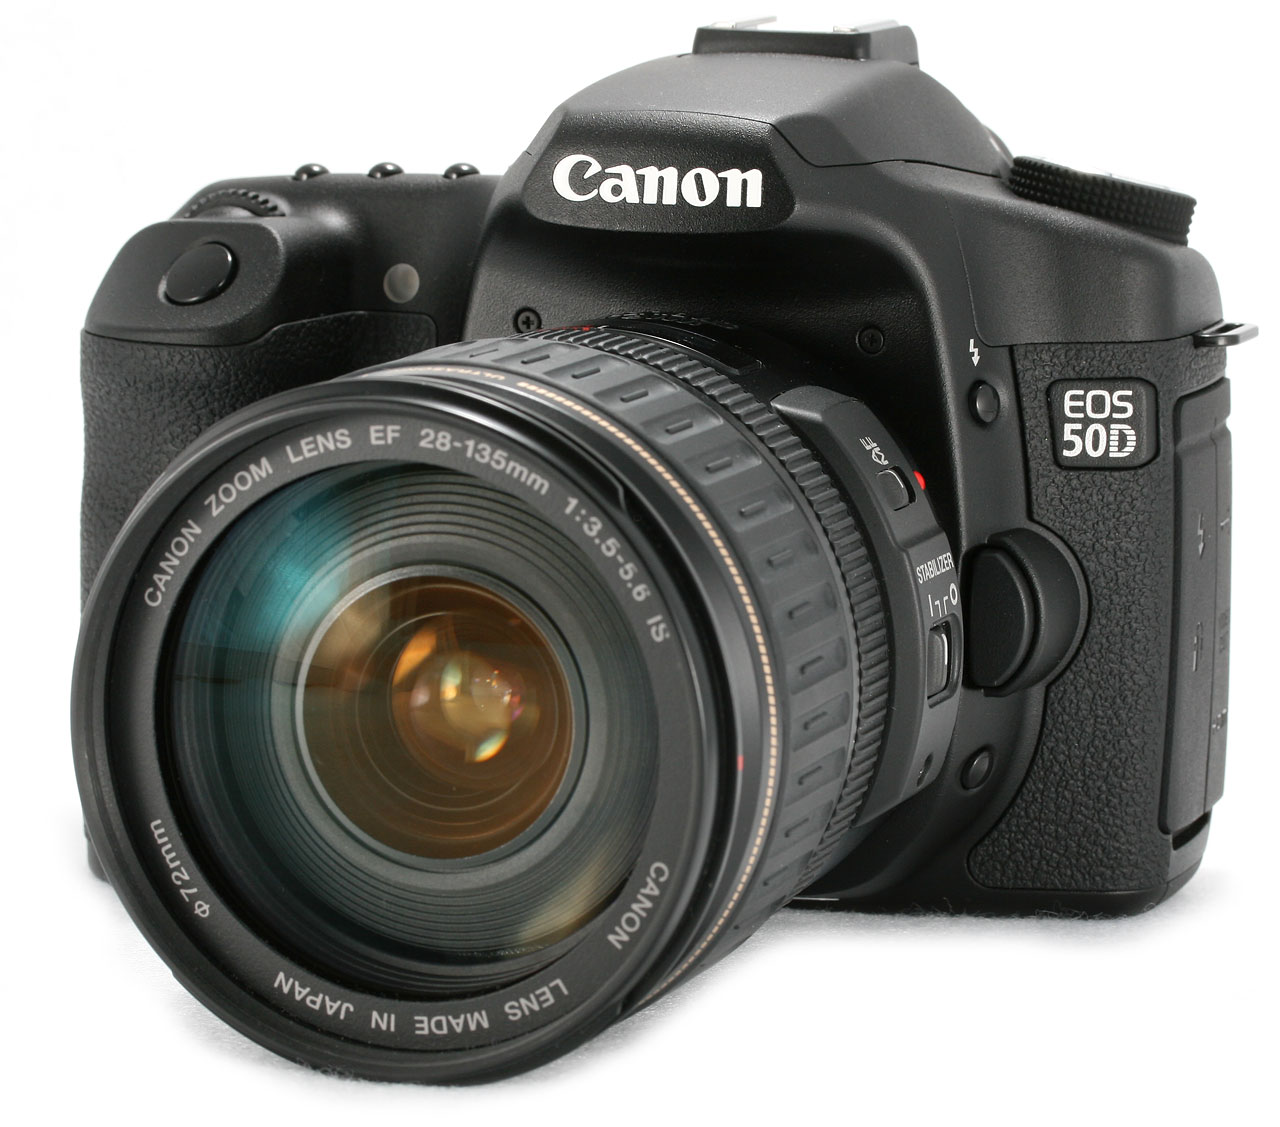 Eos 50d support download drivers, software and manuals canon uk.